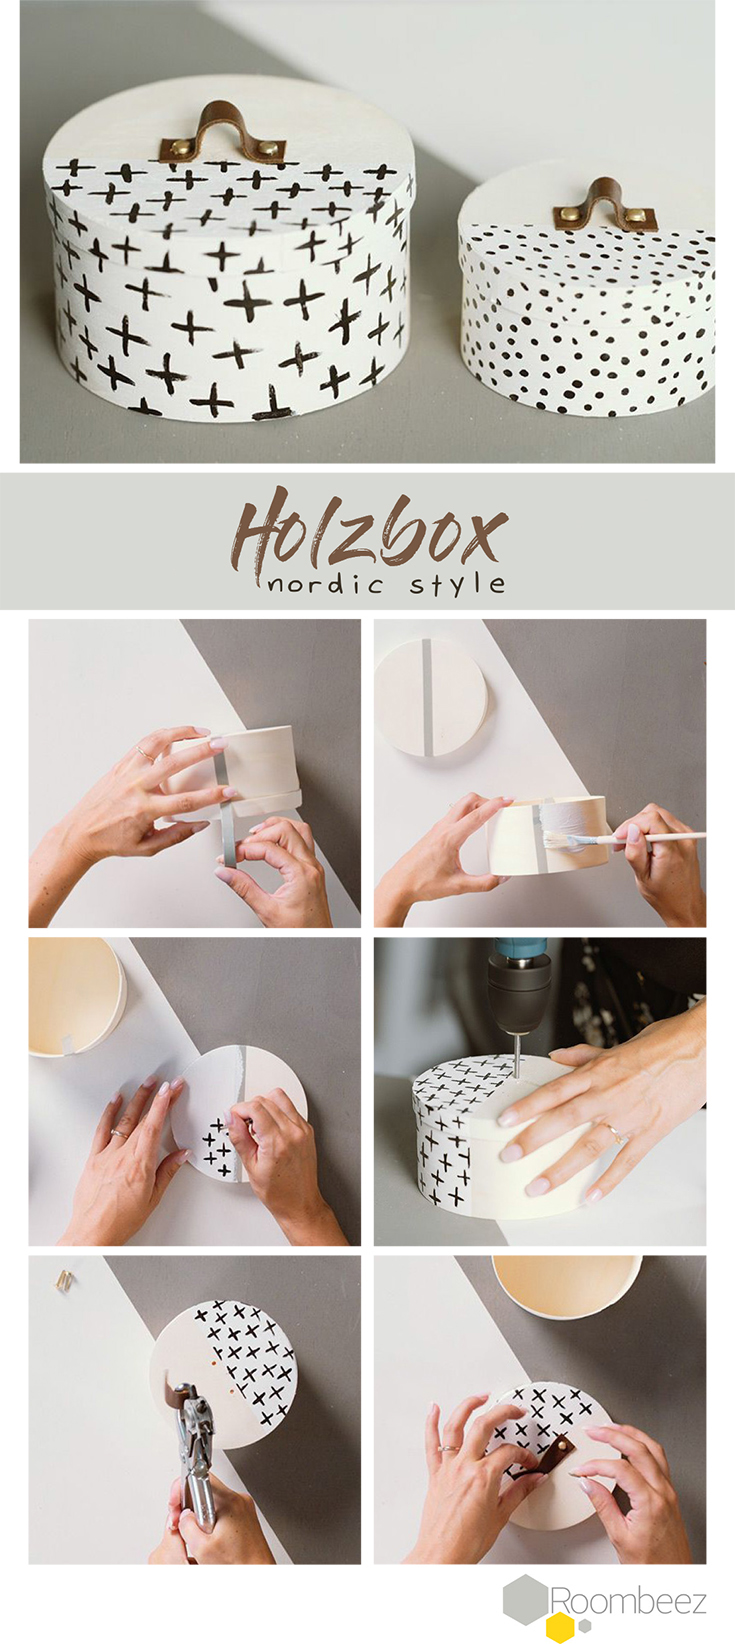 diy holzbox im nordic style selbst machen diy do it yourself pinterest diy deko selber. Black Bedroom Furniture Sets. Home Design Ideas